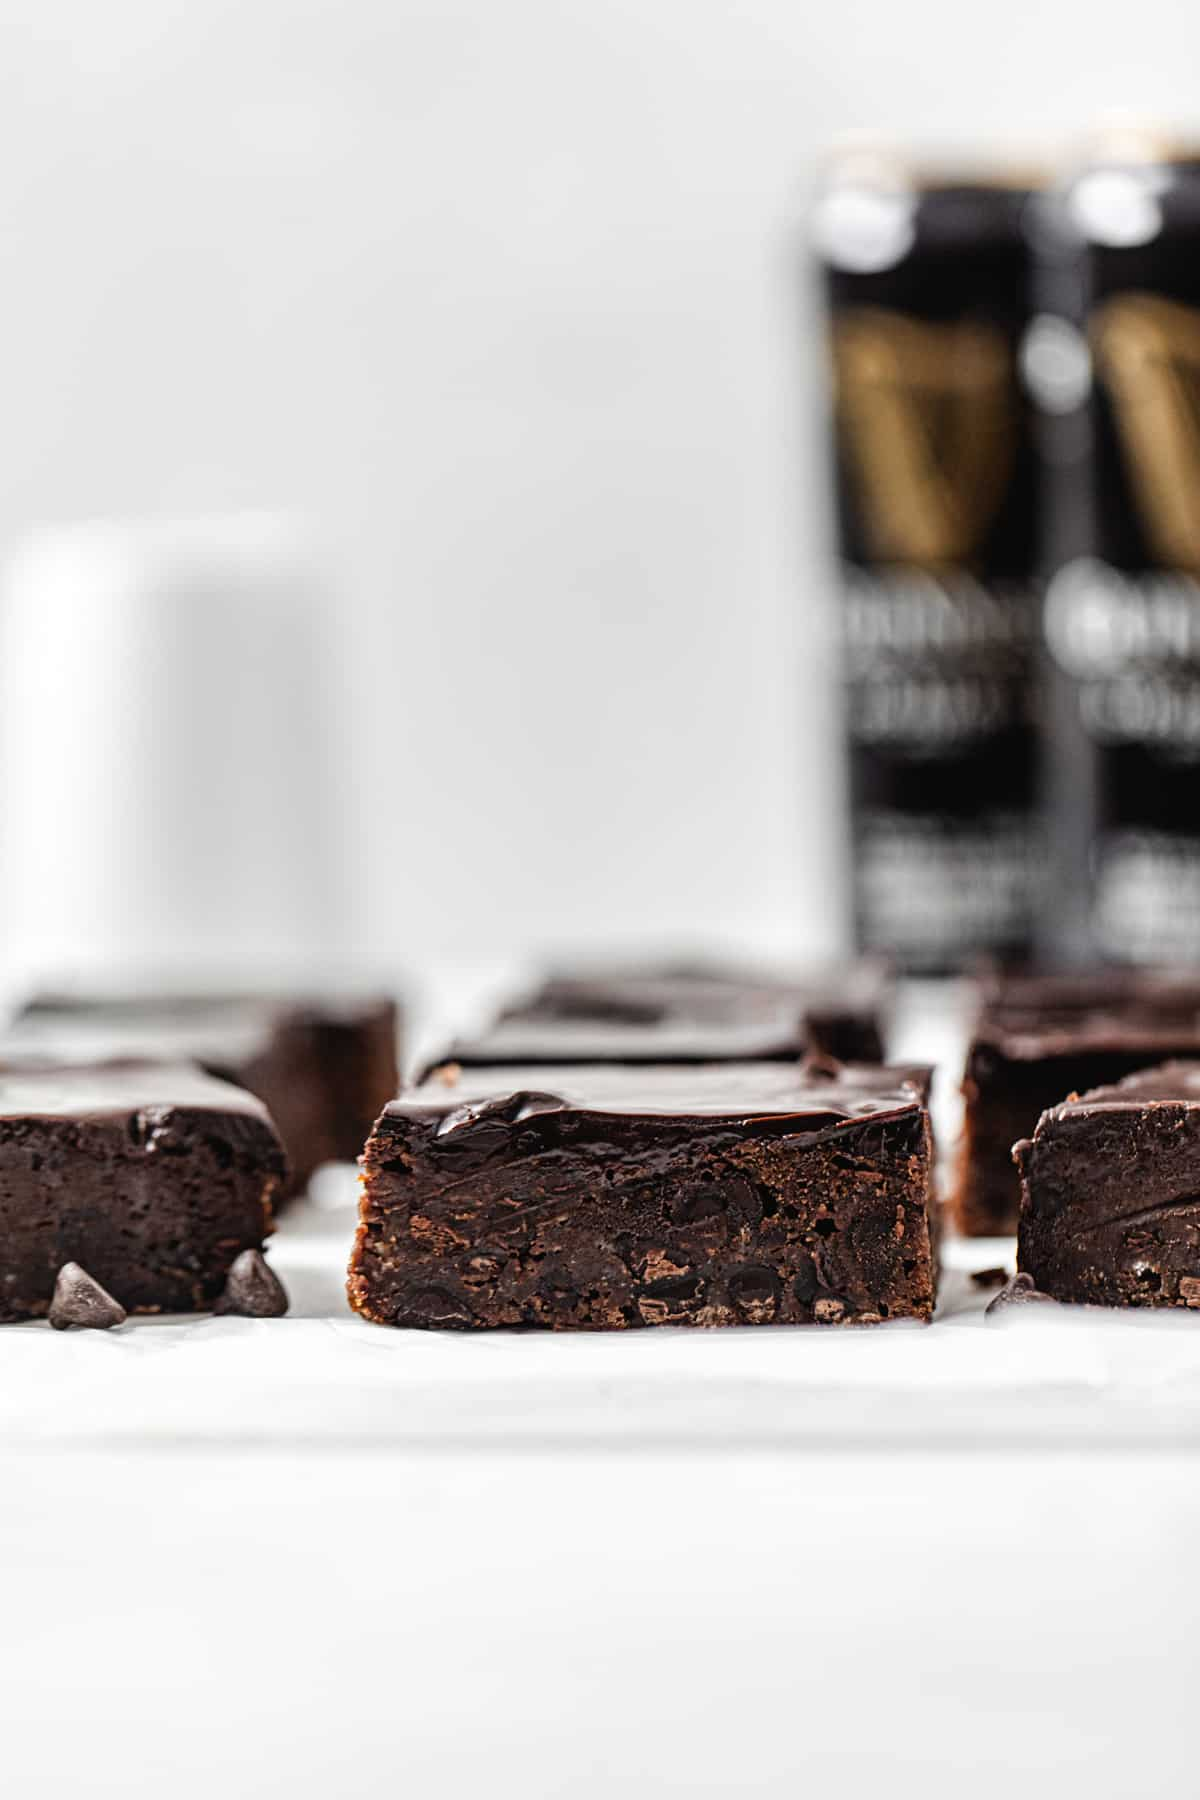 rows of brownies on parchment paper with 2 cans of Guinness beer in the background